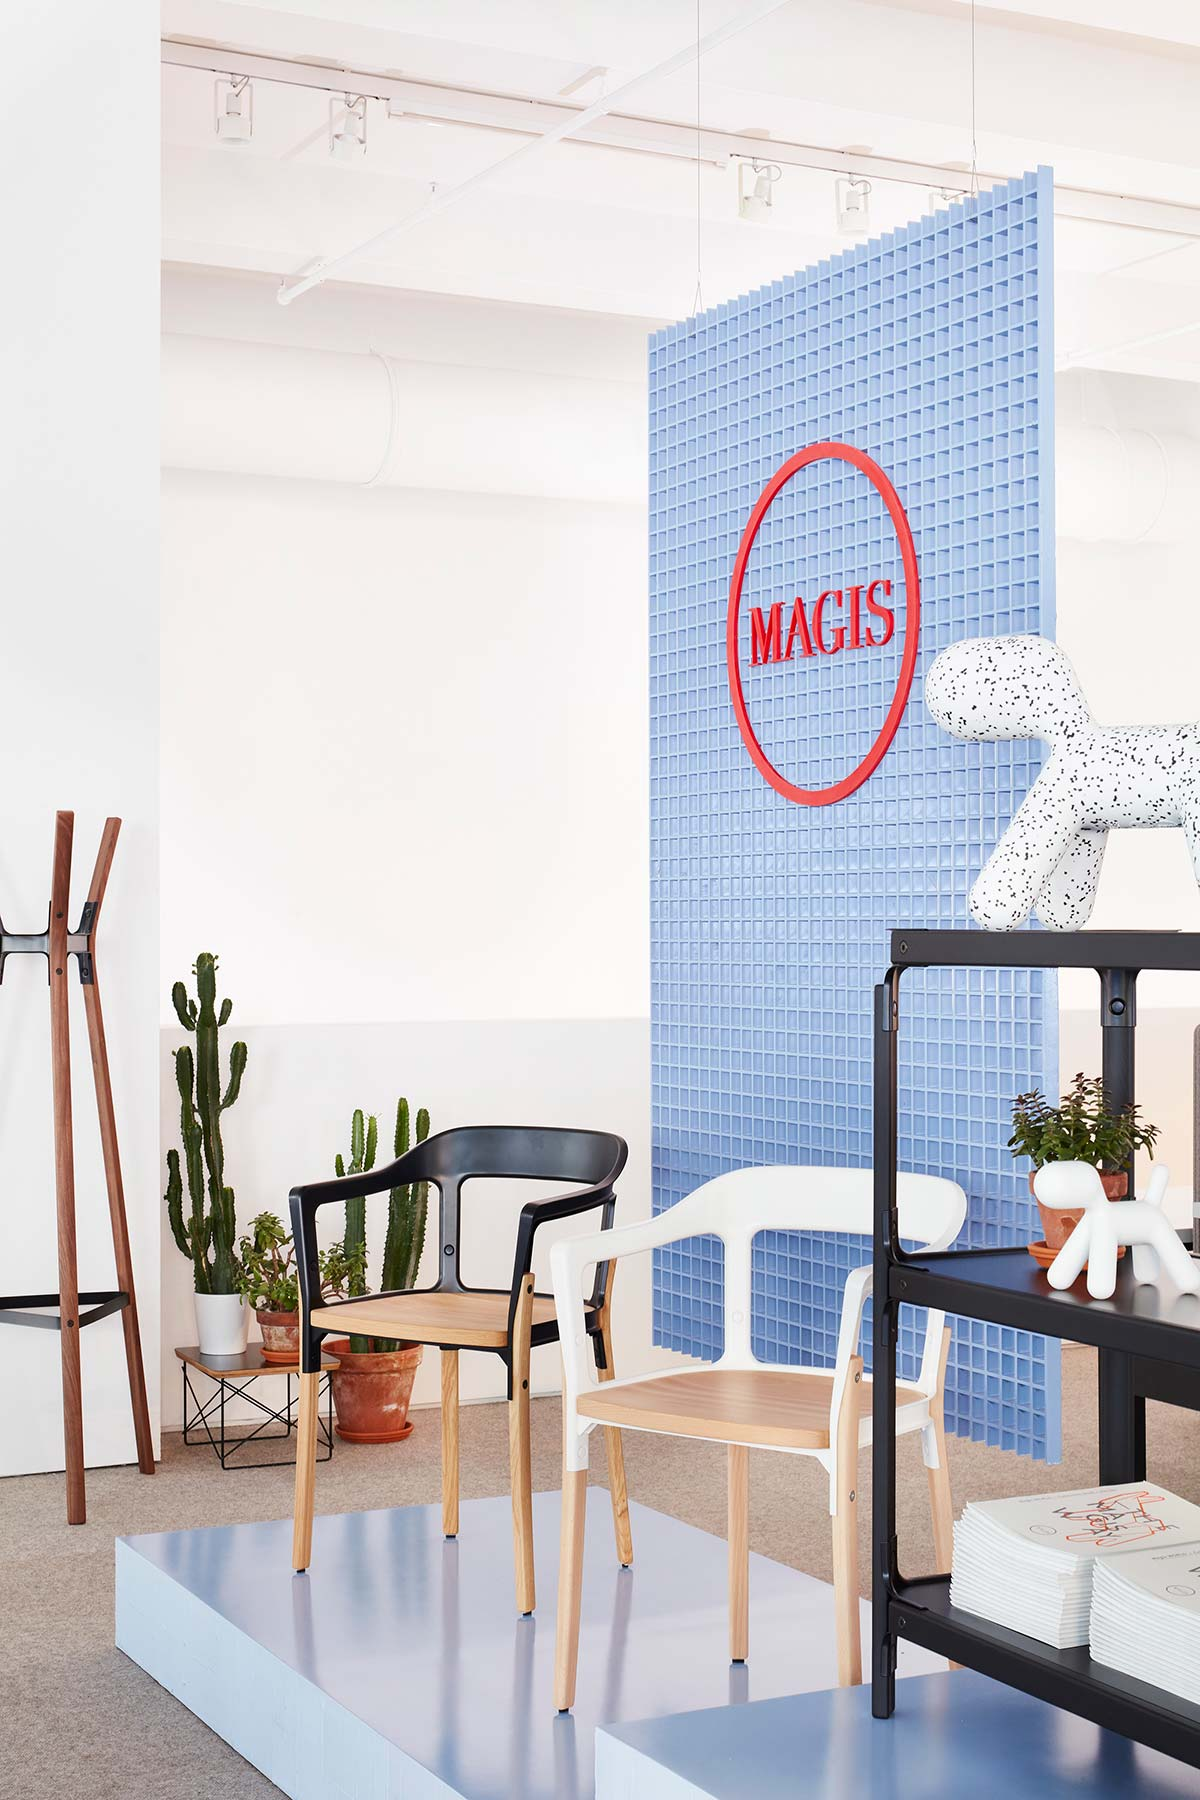 Temporary pop-up Magis a New York